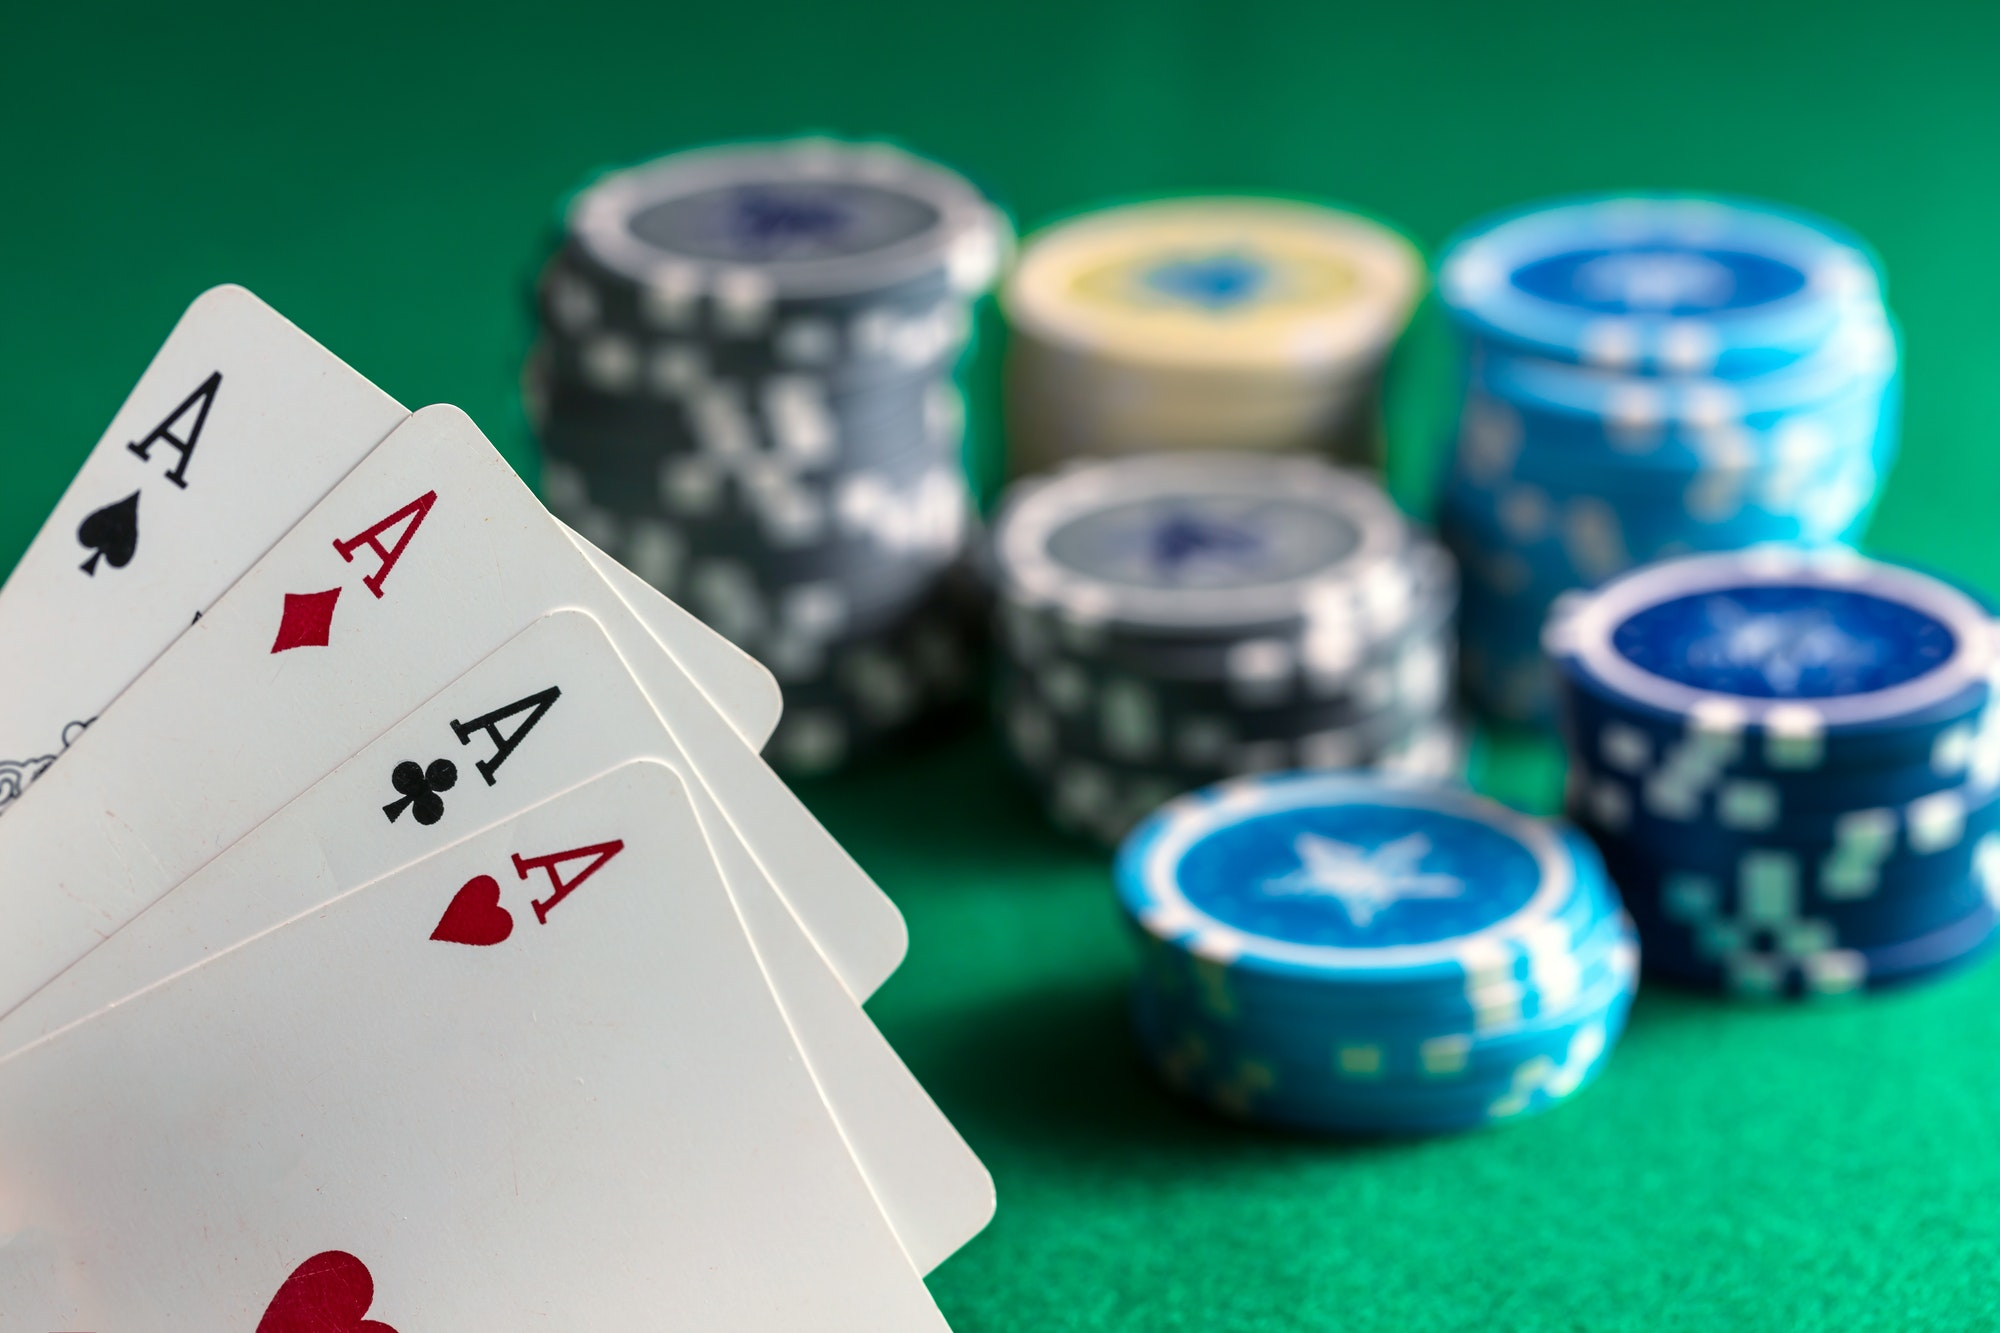 Exactly How To Make A Gambling Website?